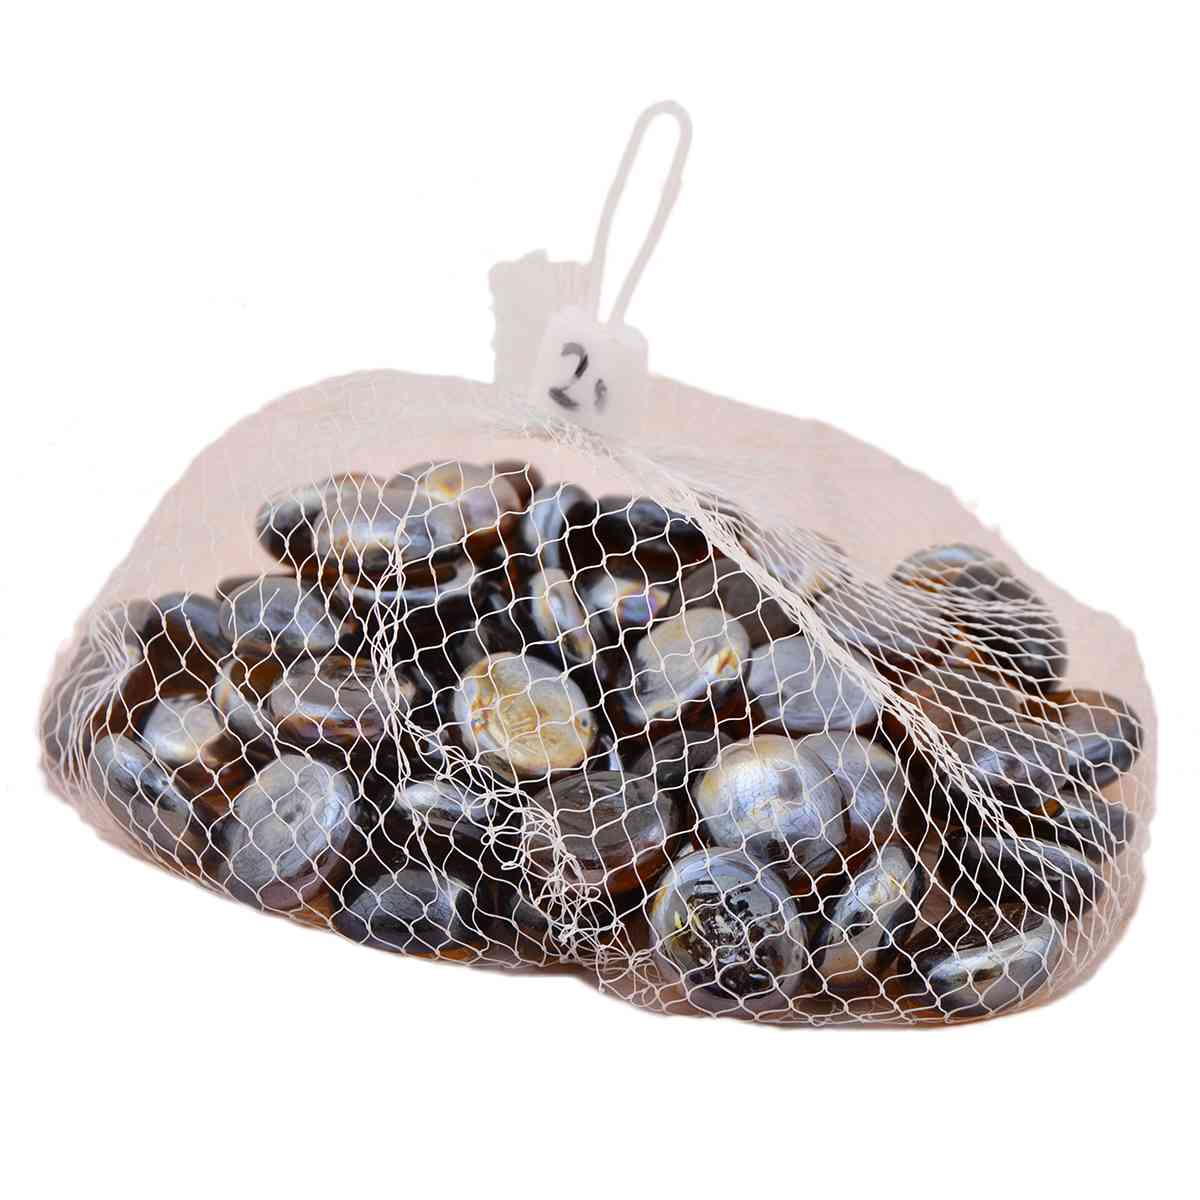 Pack of 200 Marble Beads For Table Decoration (400g, Round) - Black